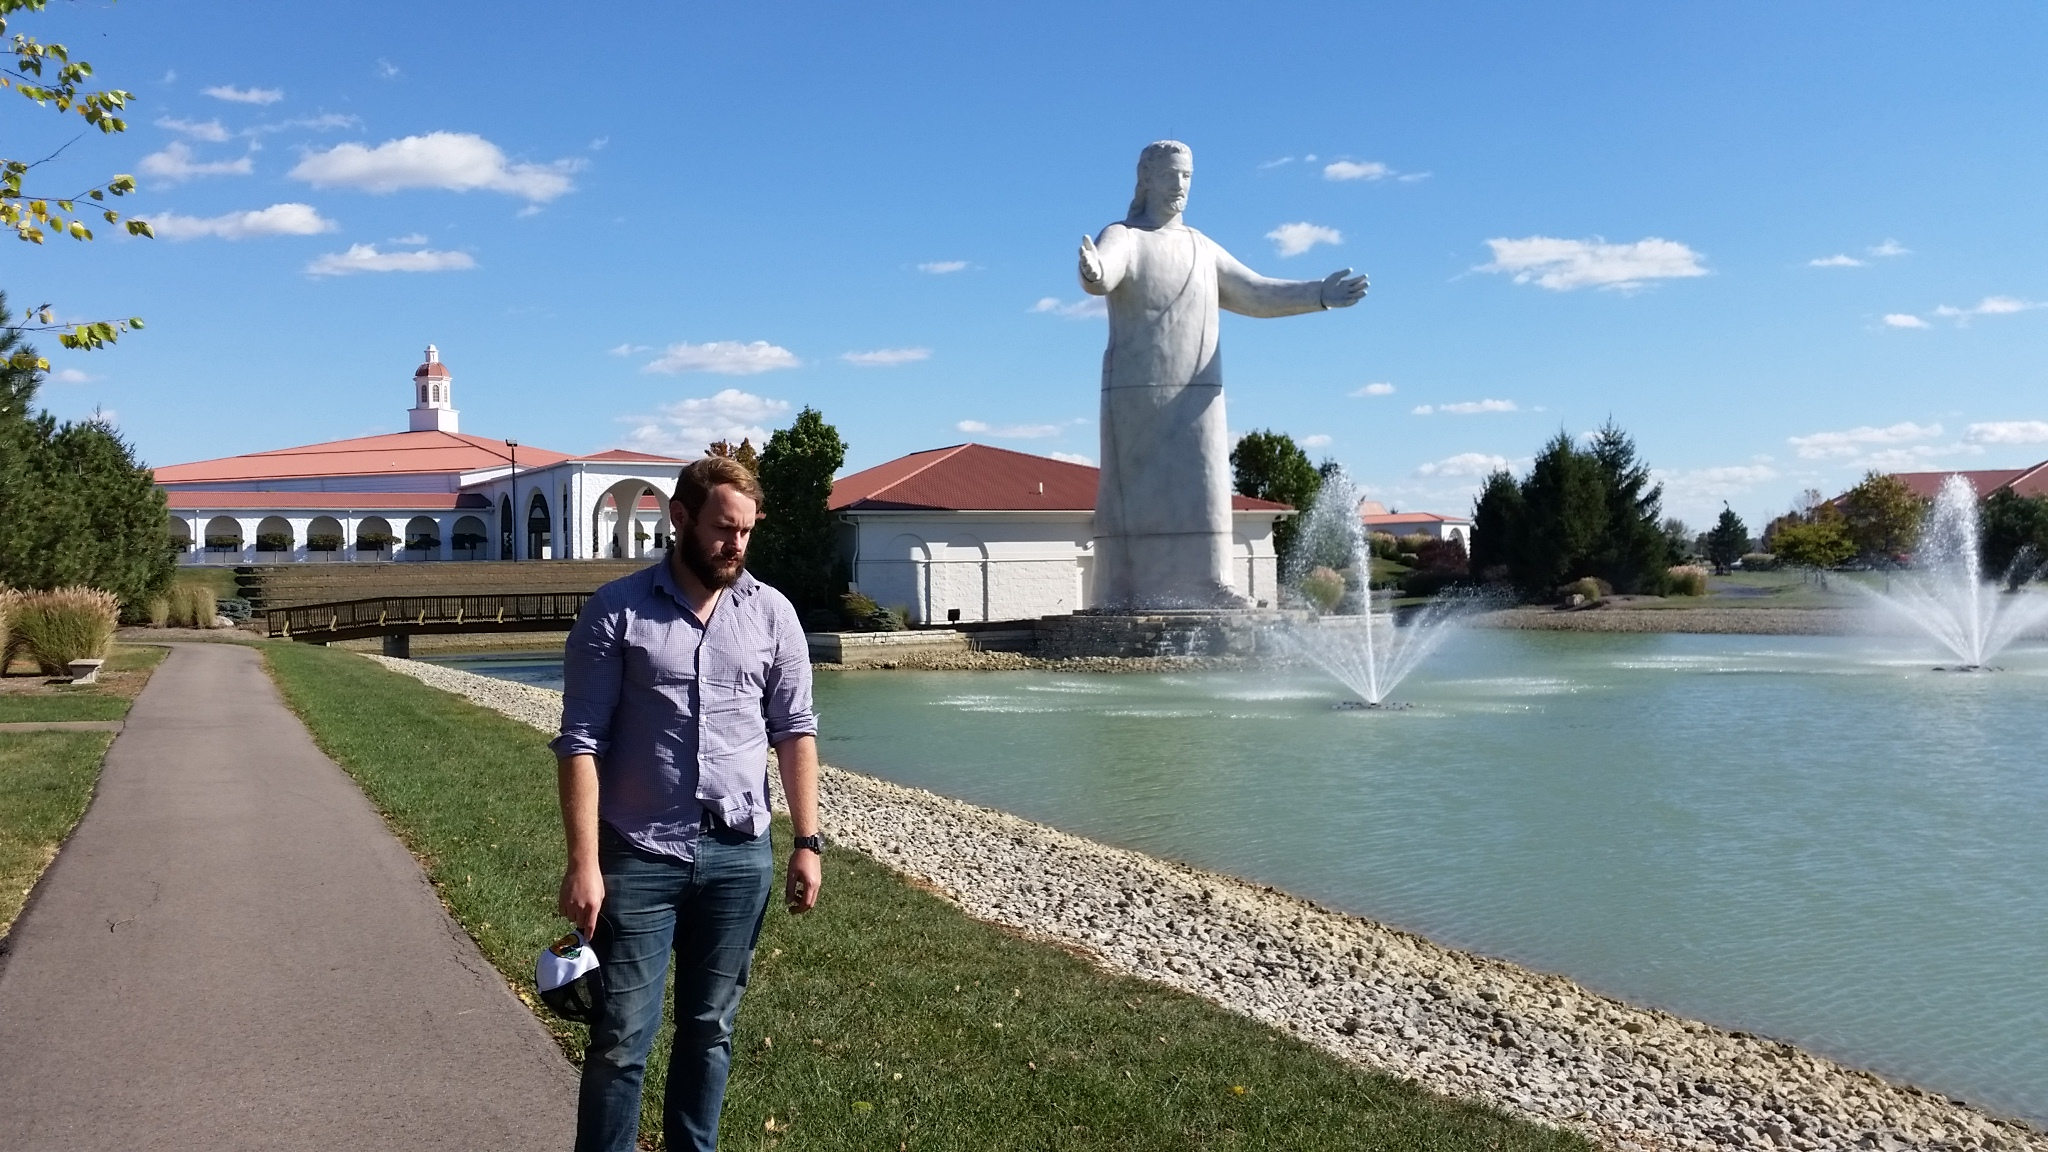 """Jason disappointed that on our way to Cincinnati the fabled """"big butter Jesus"""" was remade to a smaller, less fun statue"""